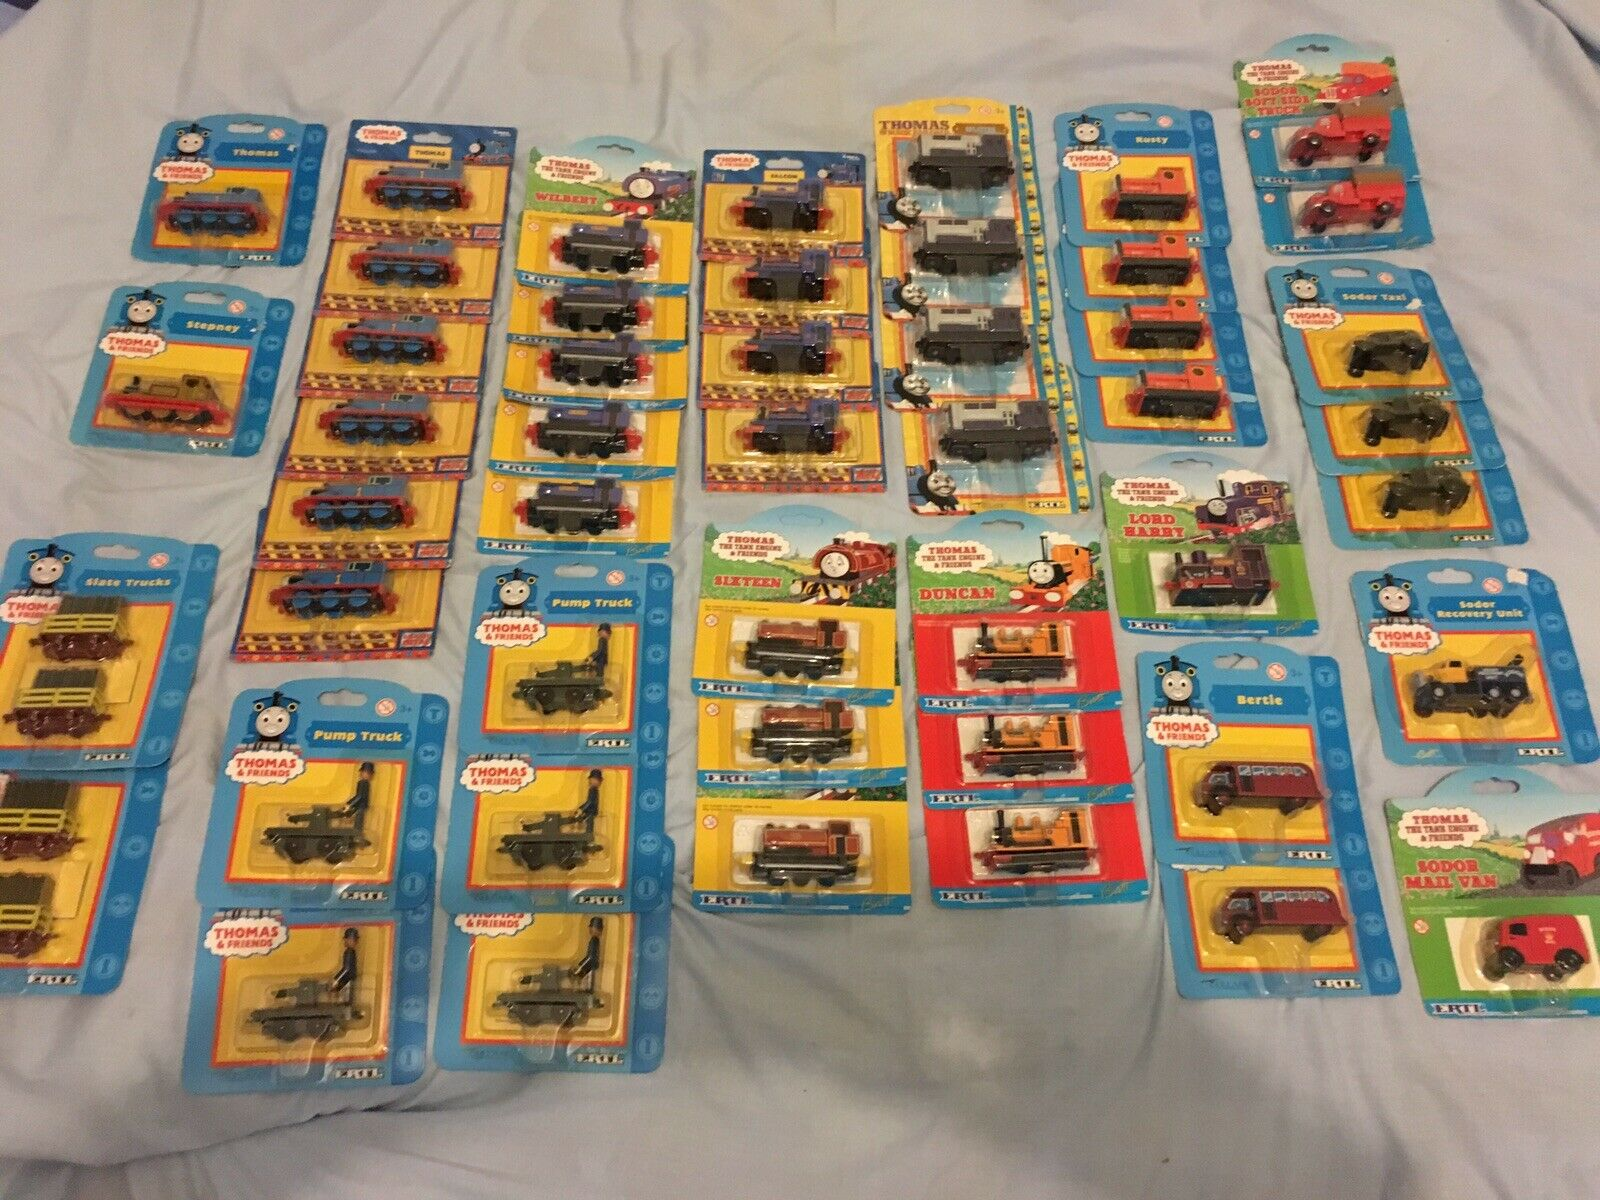 Thomas The Tank Engine, Ertl, Die-Cast Boxed, Carded, Unopened, Job Lot X48